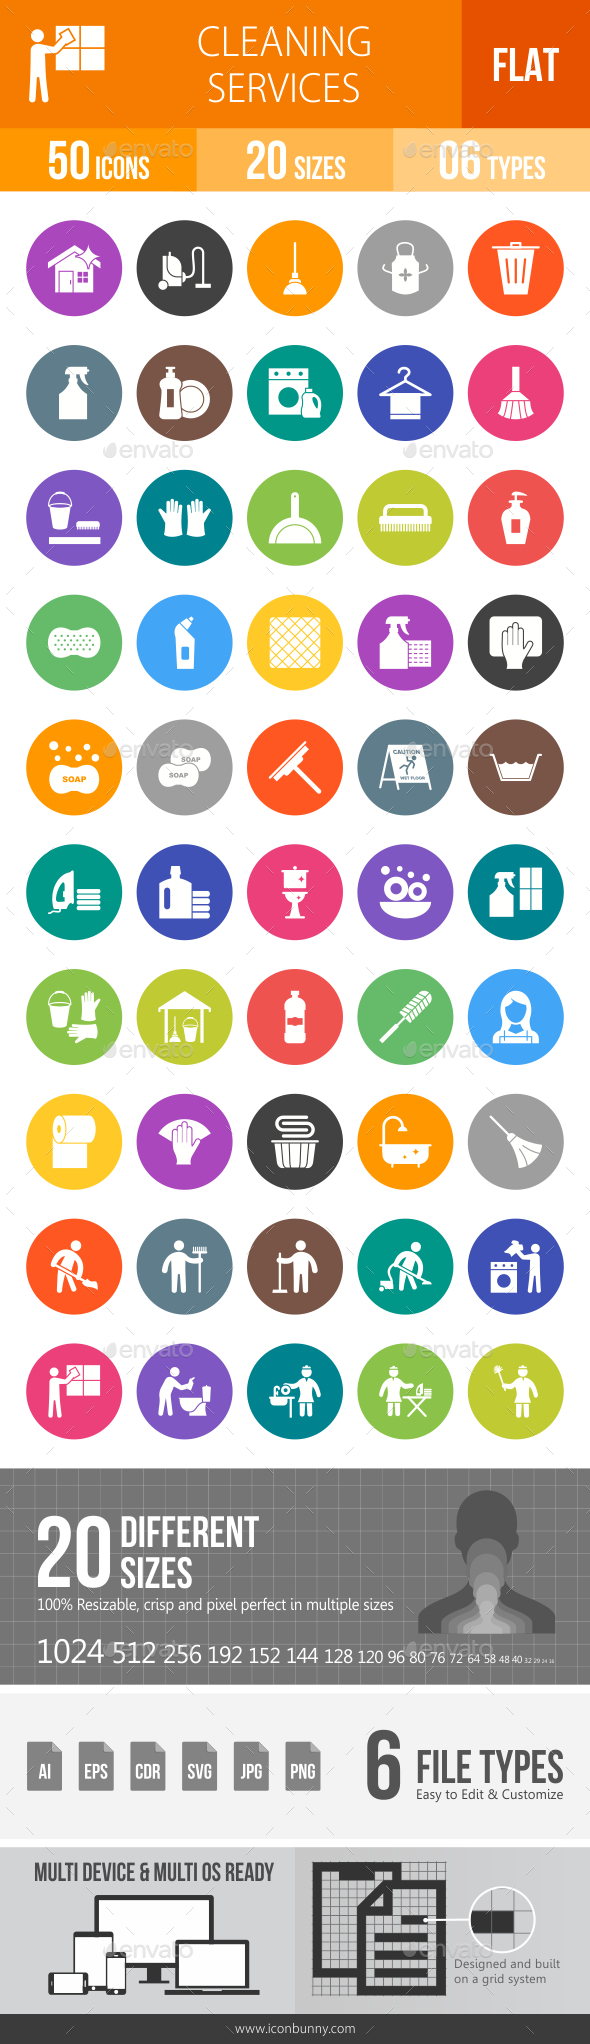 Cleaning Services Flat Round Icons - Icons